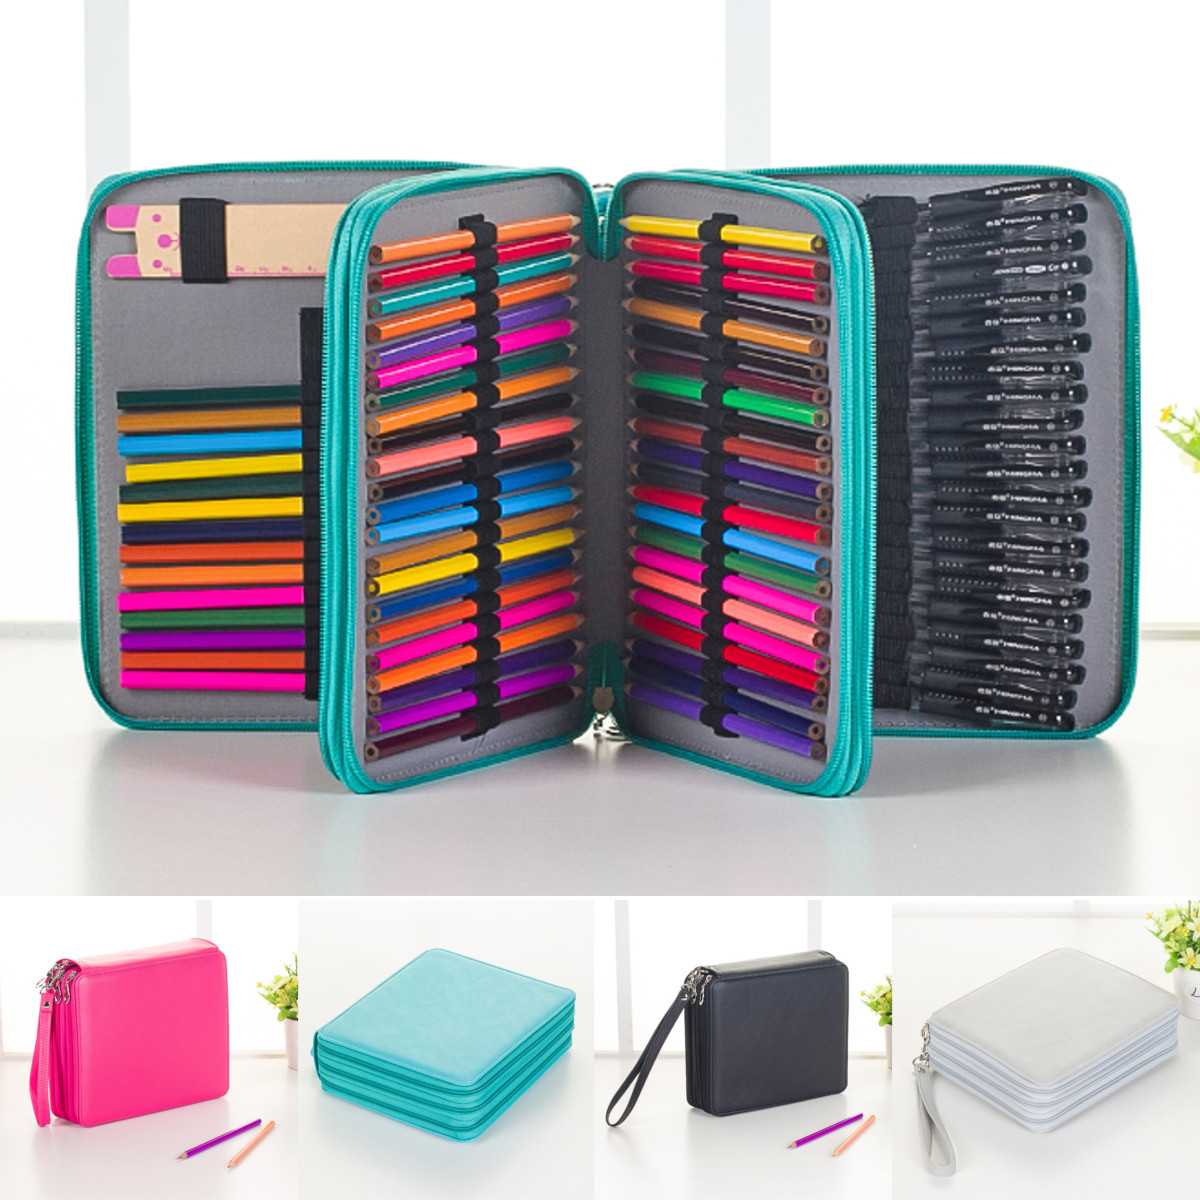 Buy 120 Slots Pencil Case Cosmetic Makeup Bag Storage Travel Zipper Pouch Student Stationery